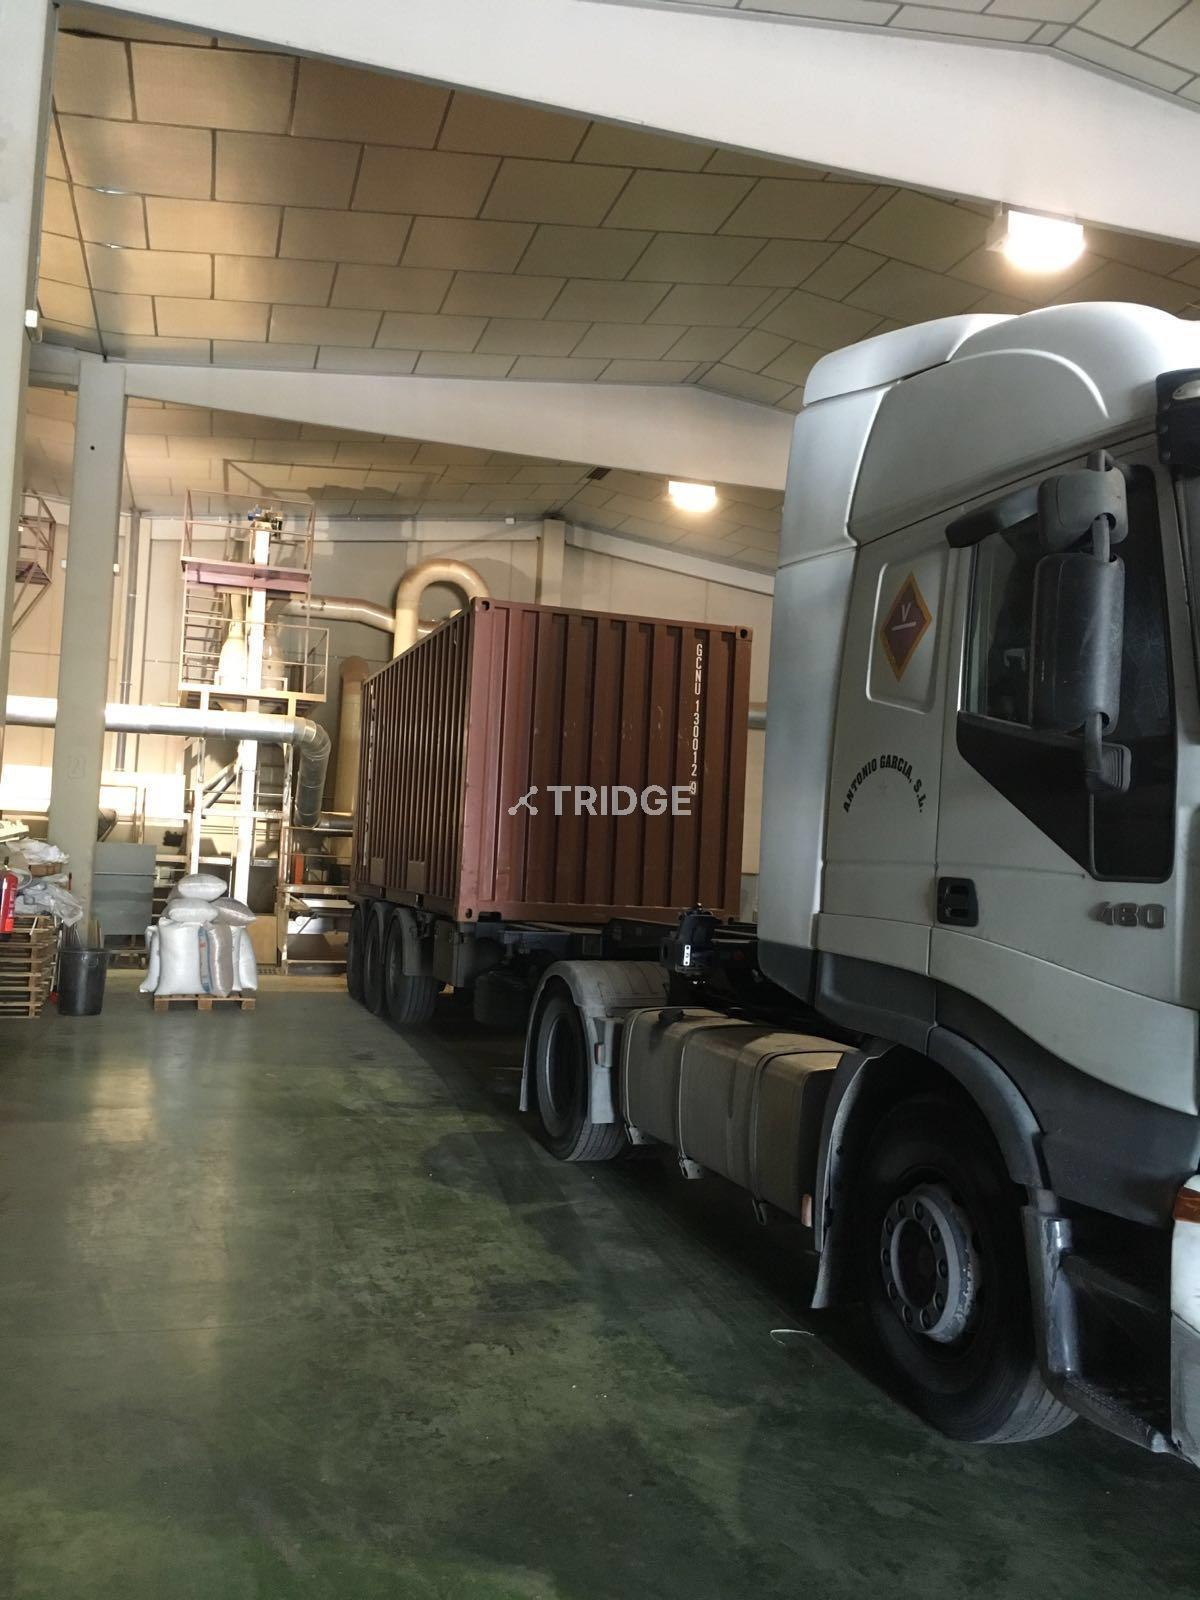 Product delivered to our customers